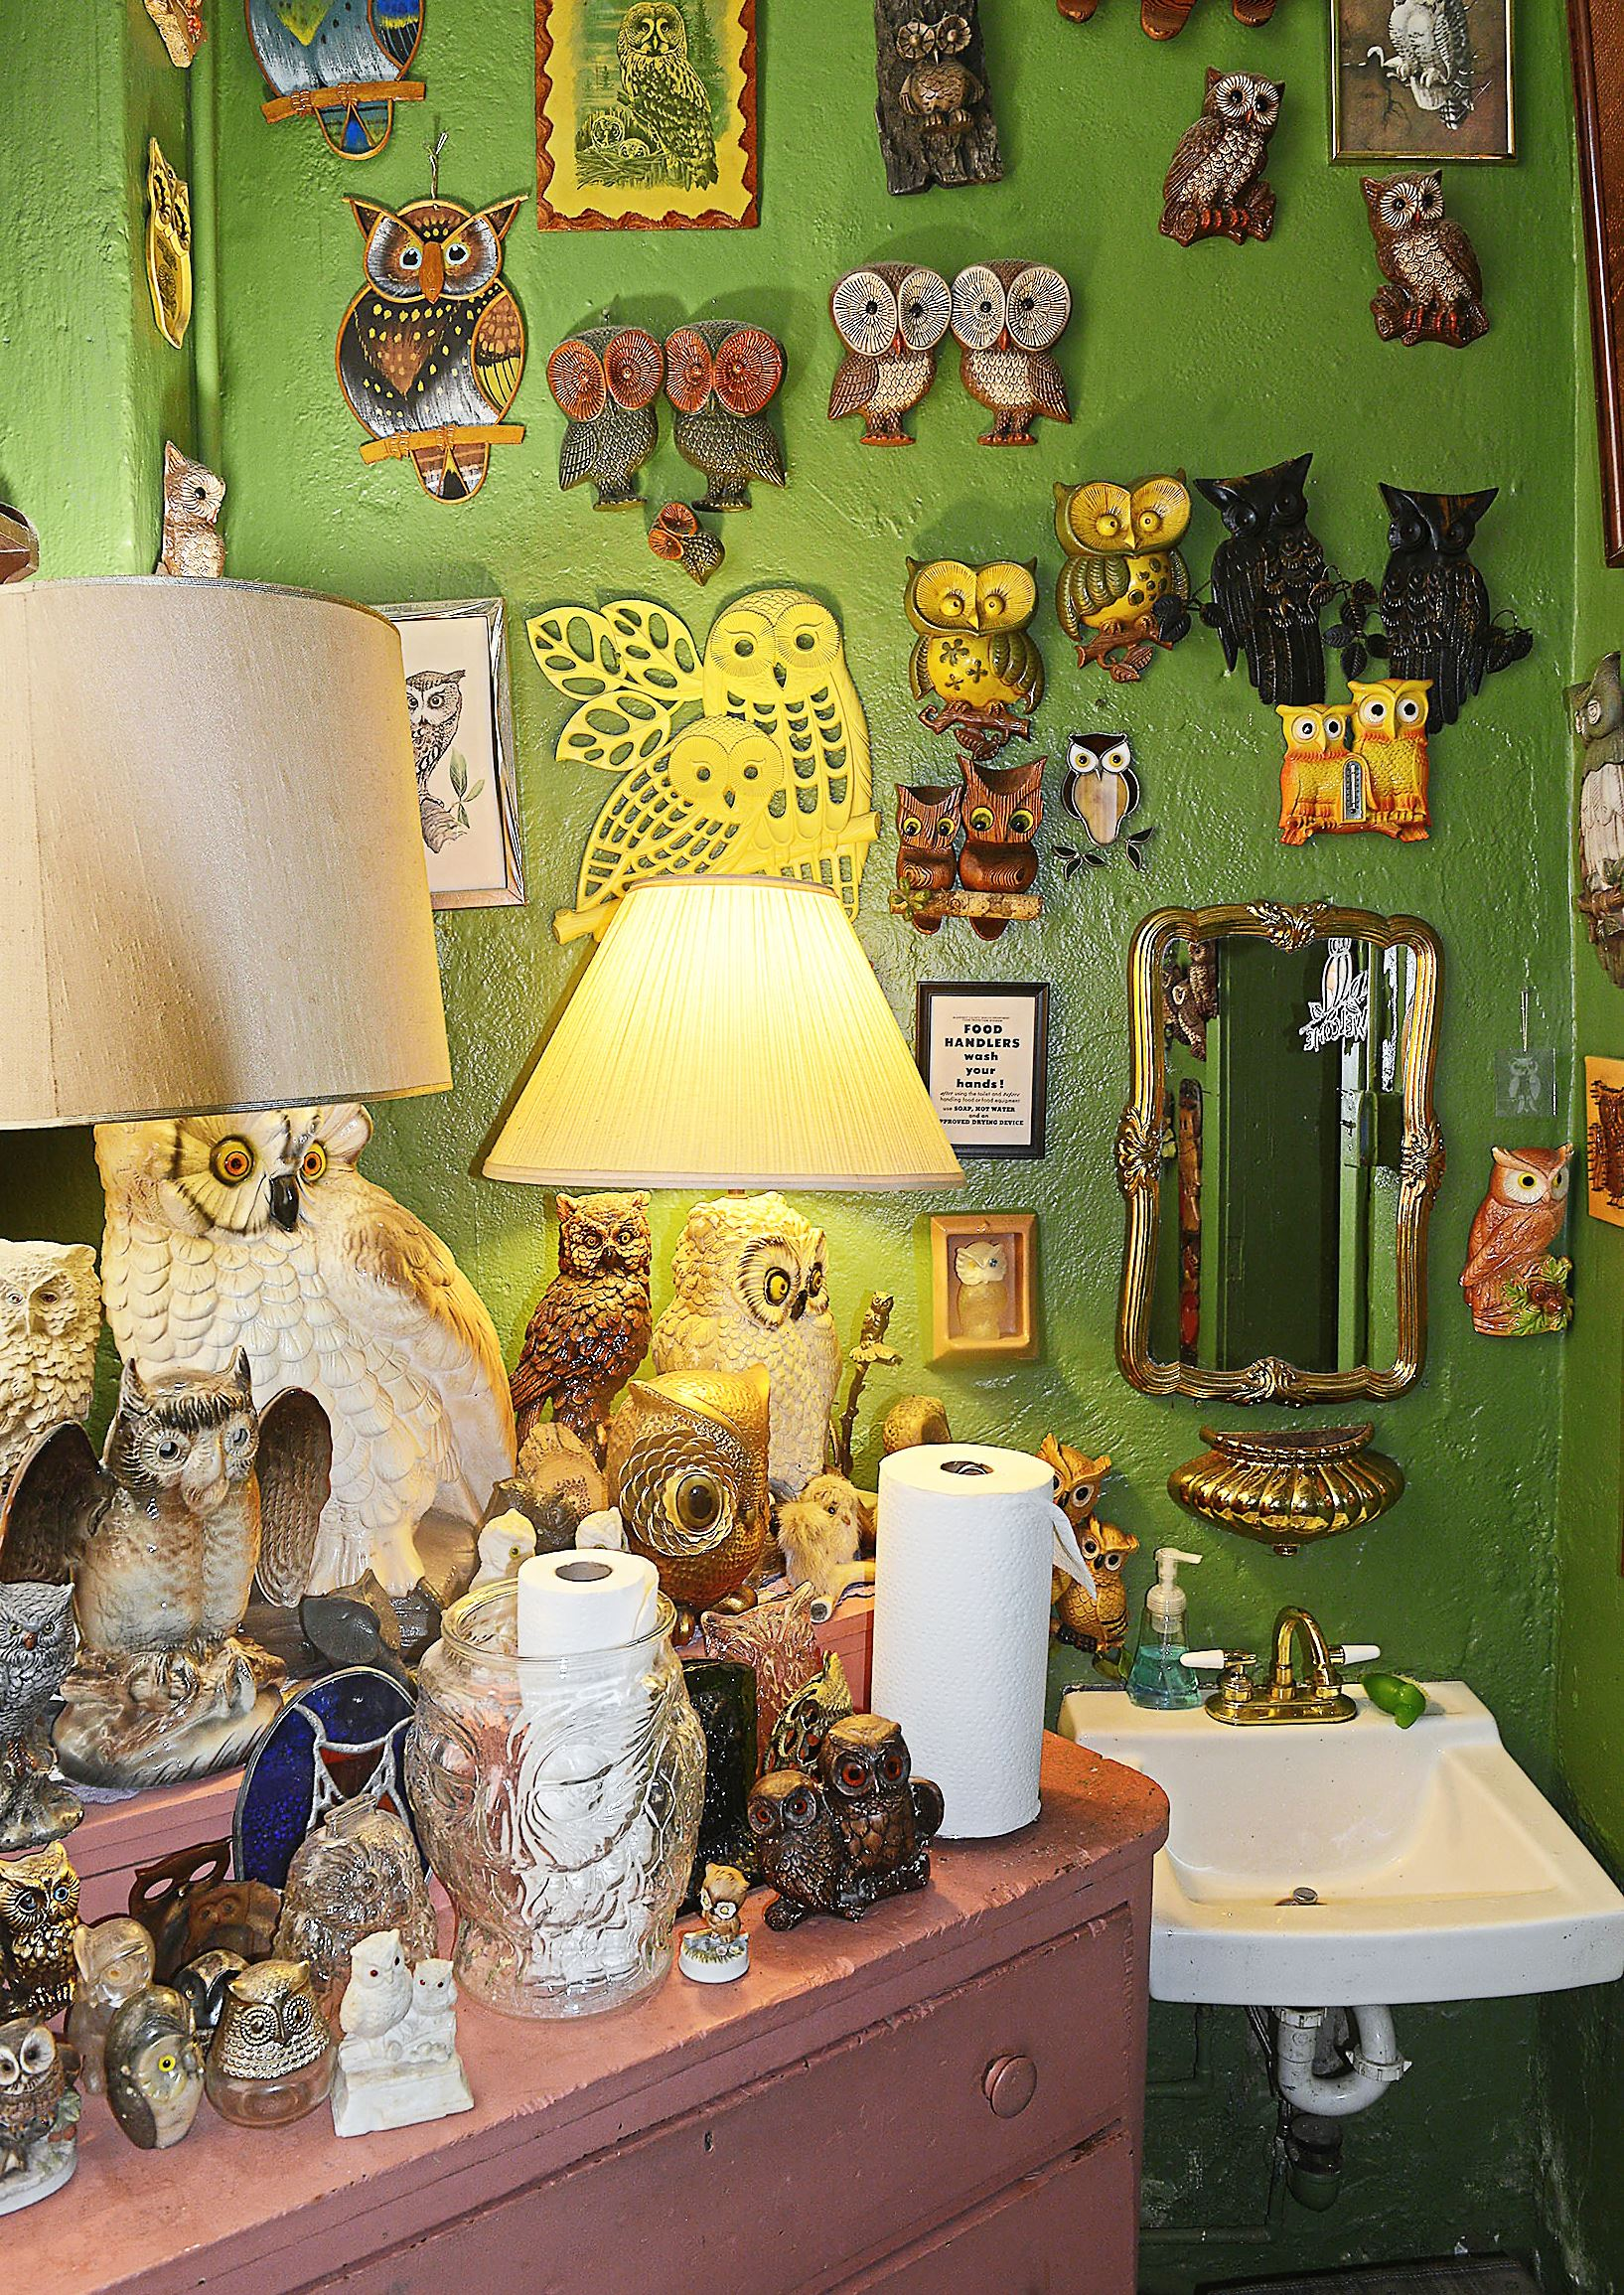 20170723lrfoodzenith11-10 The Zenith, part restaurant and part antique shop, located on the South Side at the corner of Sarah and 26th, adorns the restroom with a collection of owls -- not for sale.